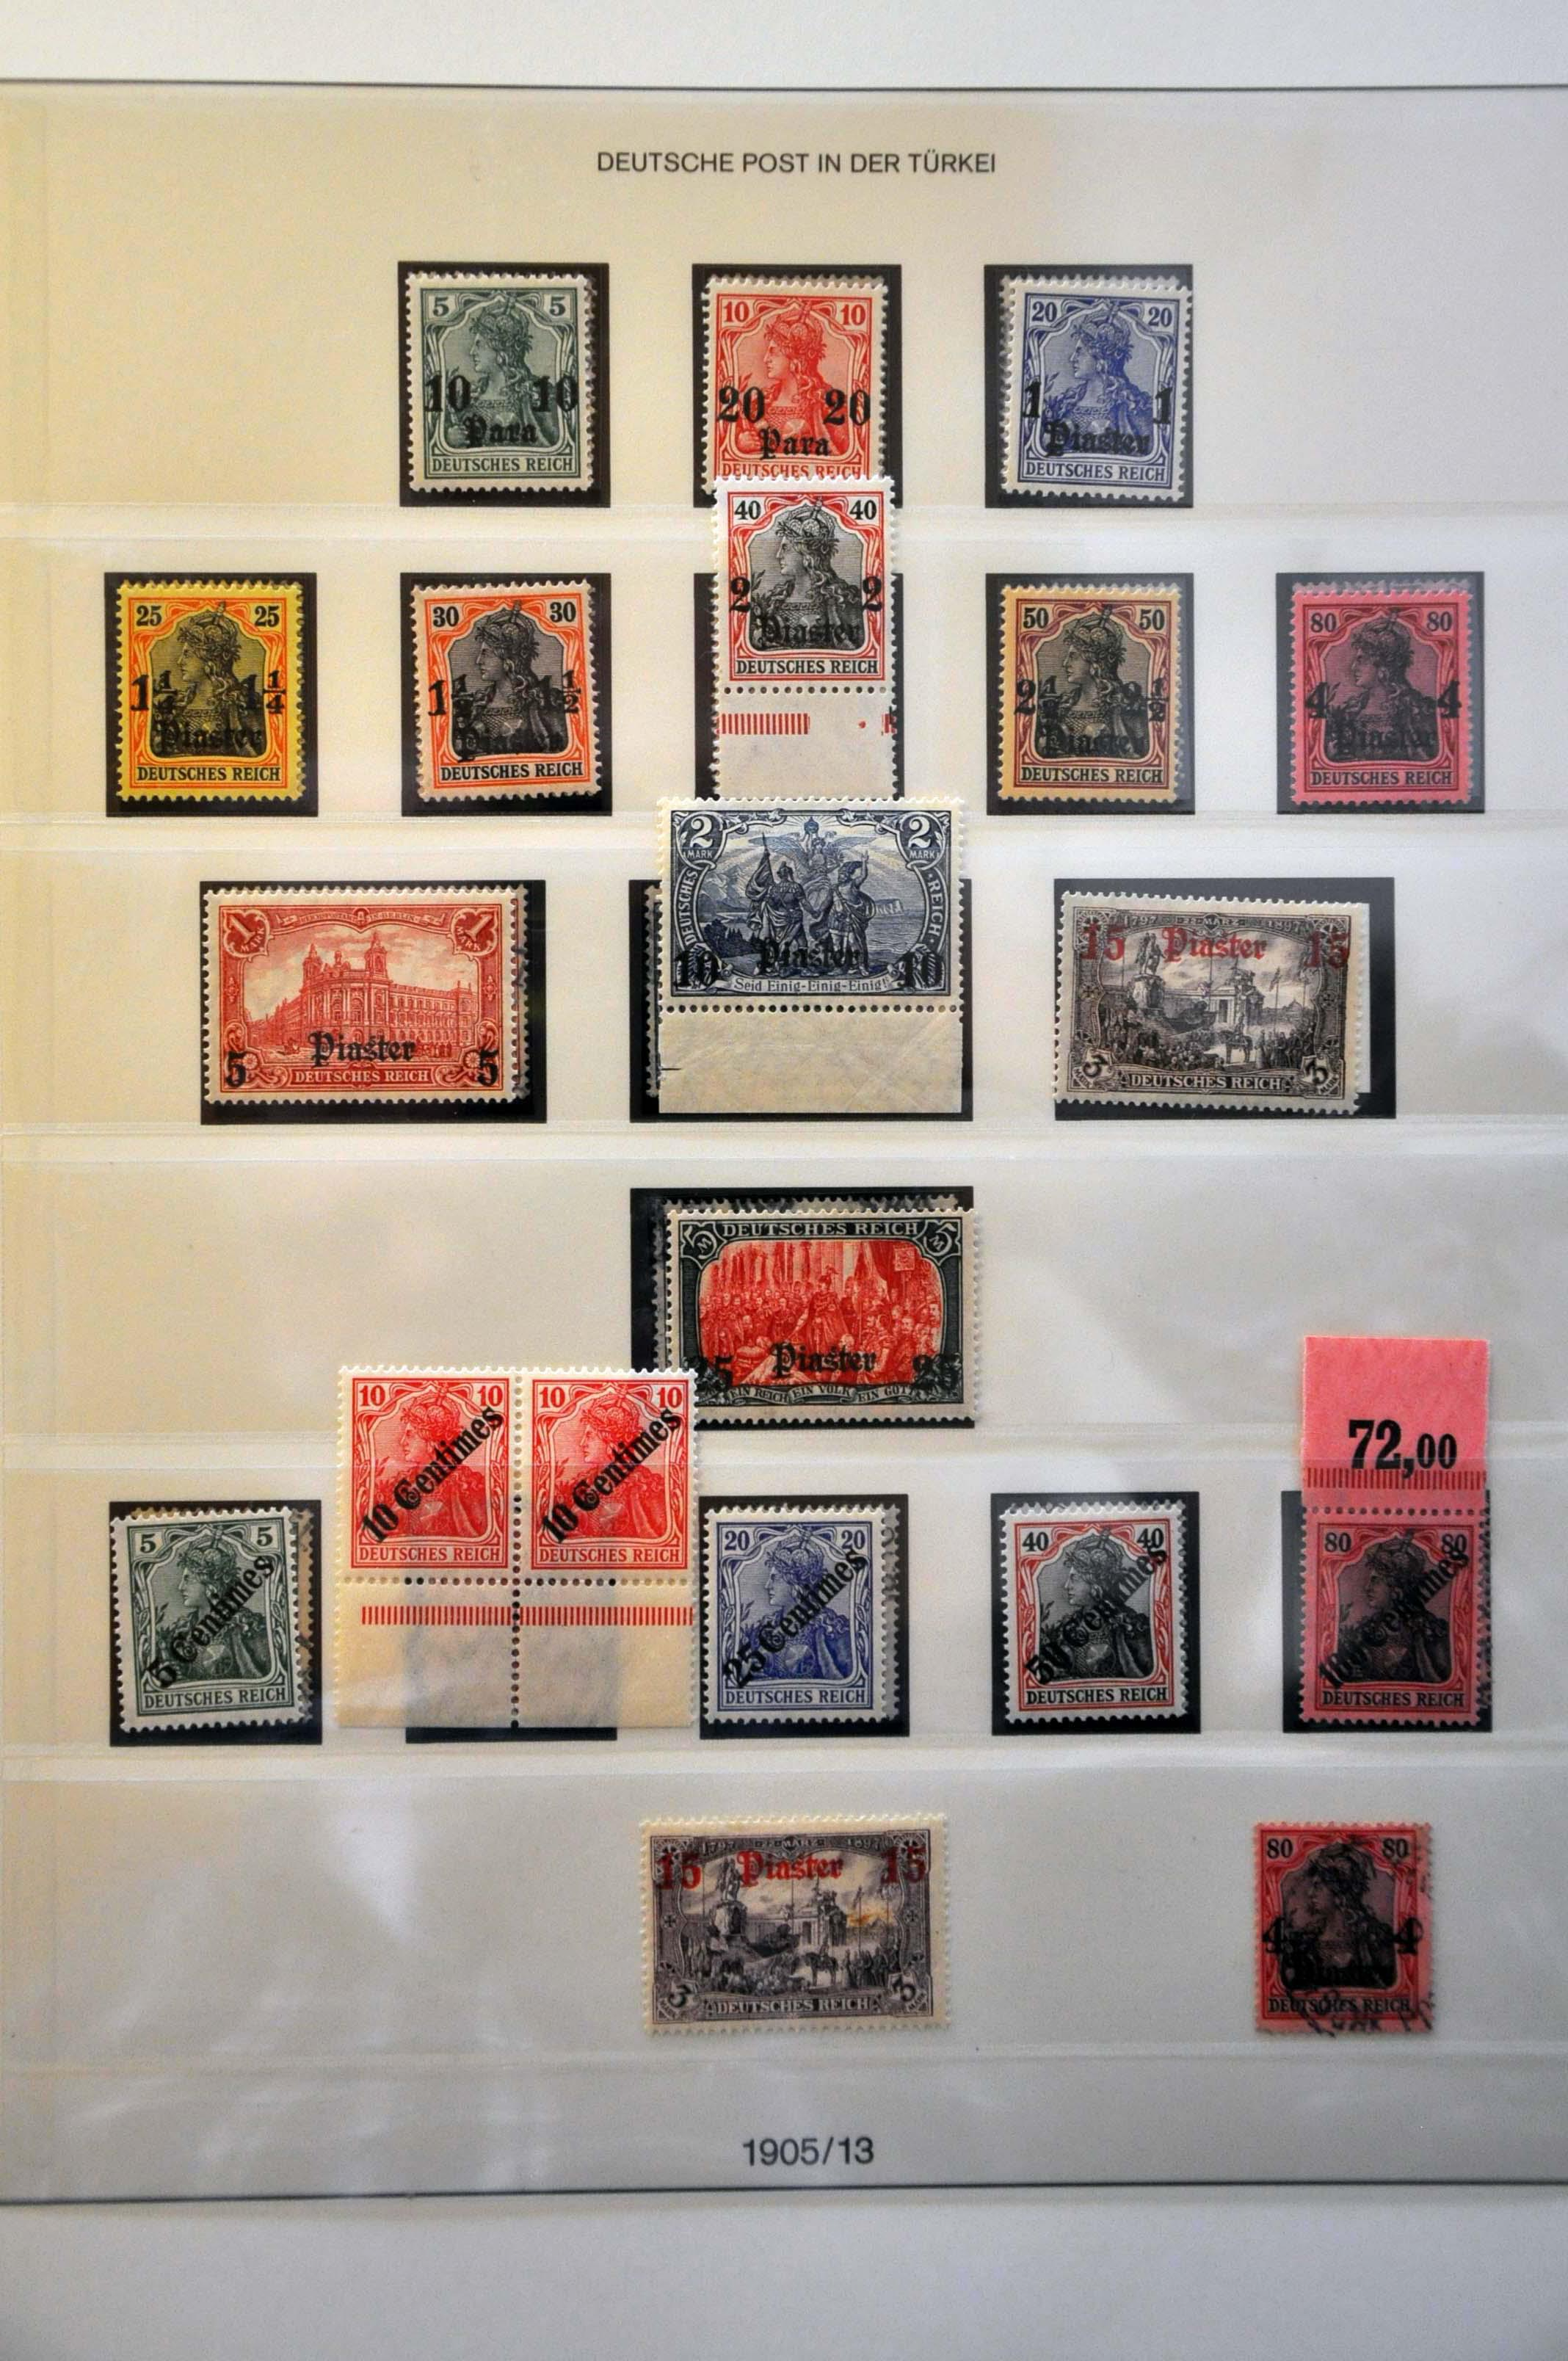 Lot 299 - Germany and former colonies German Post Office in Turkey -  Corinphila Veilingen Auction 244 -Netherlands and former colonies, WW2 Postal History, Bosnia, German and British colonies, Egypt. - Day 1